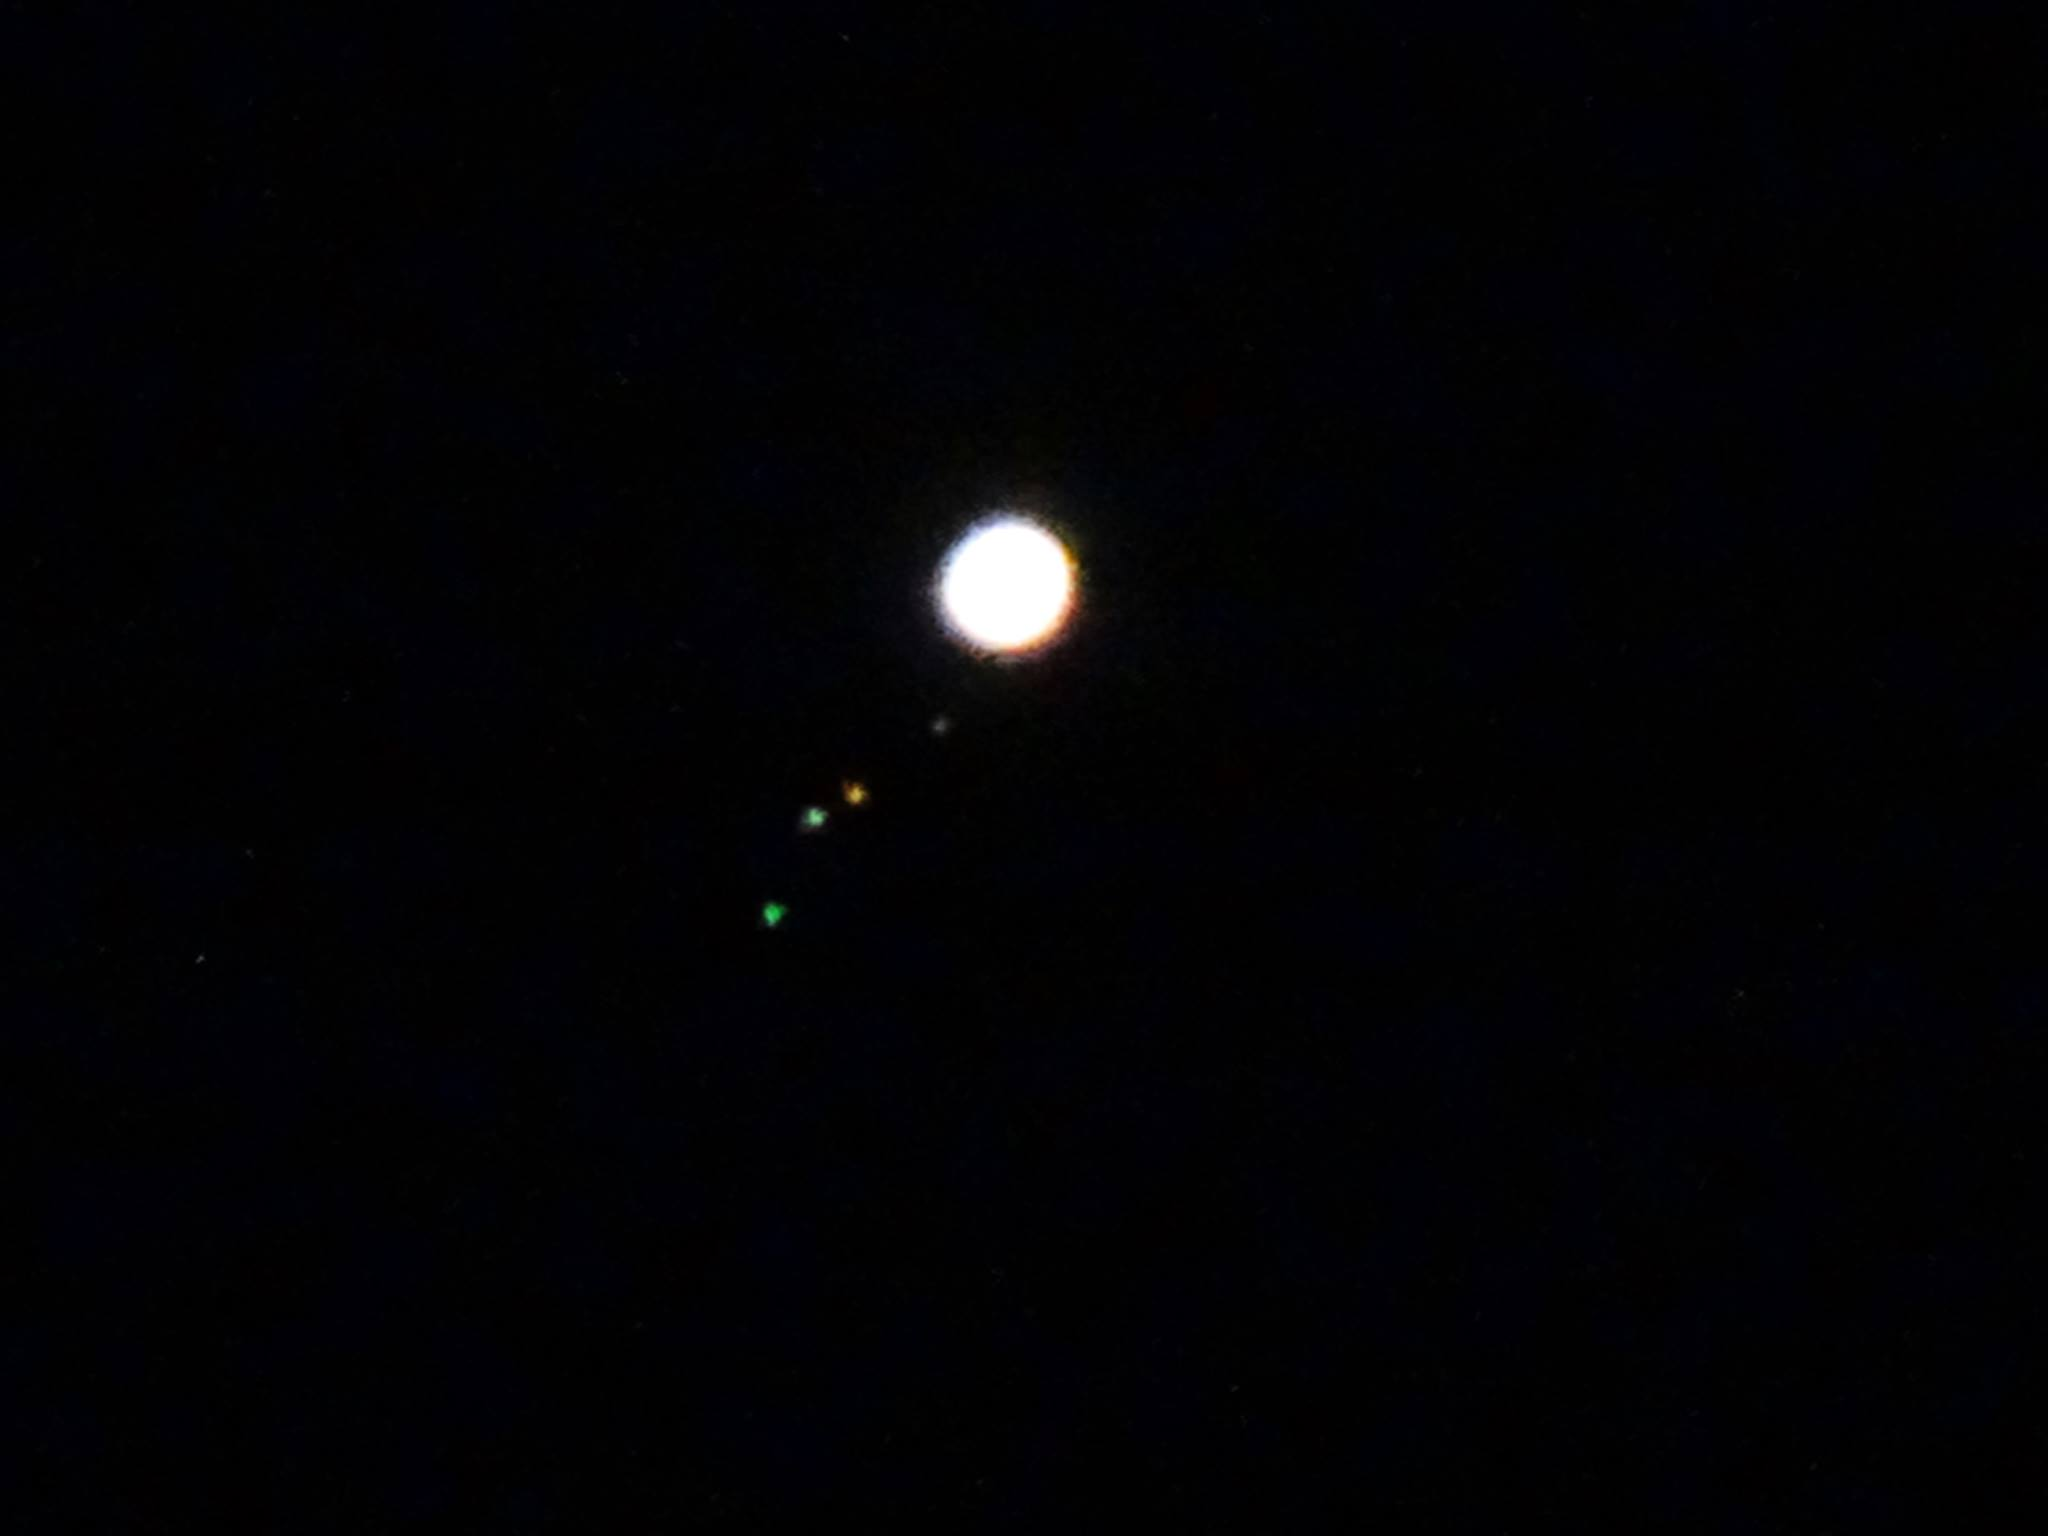 planet with four moons - photo #19